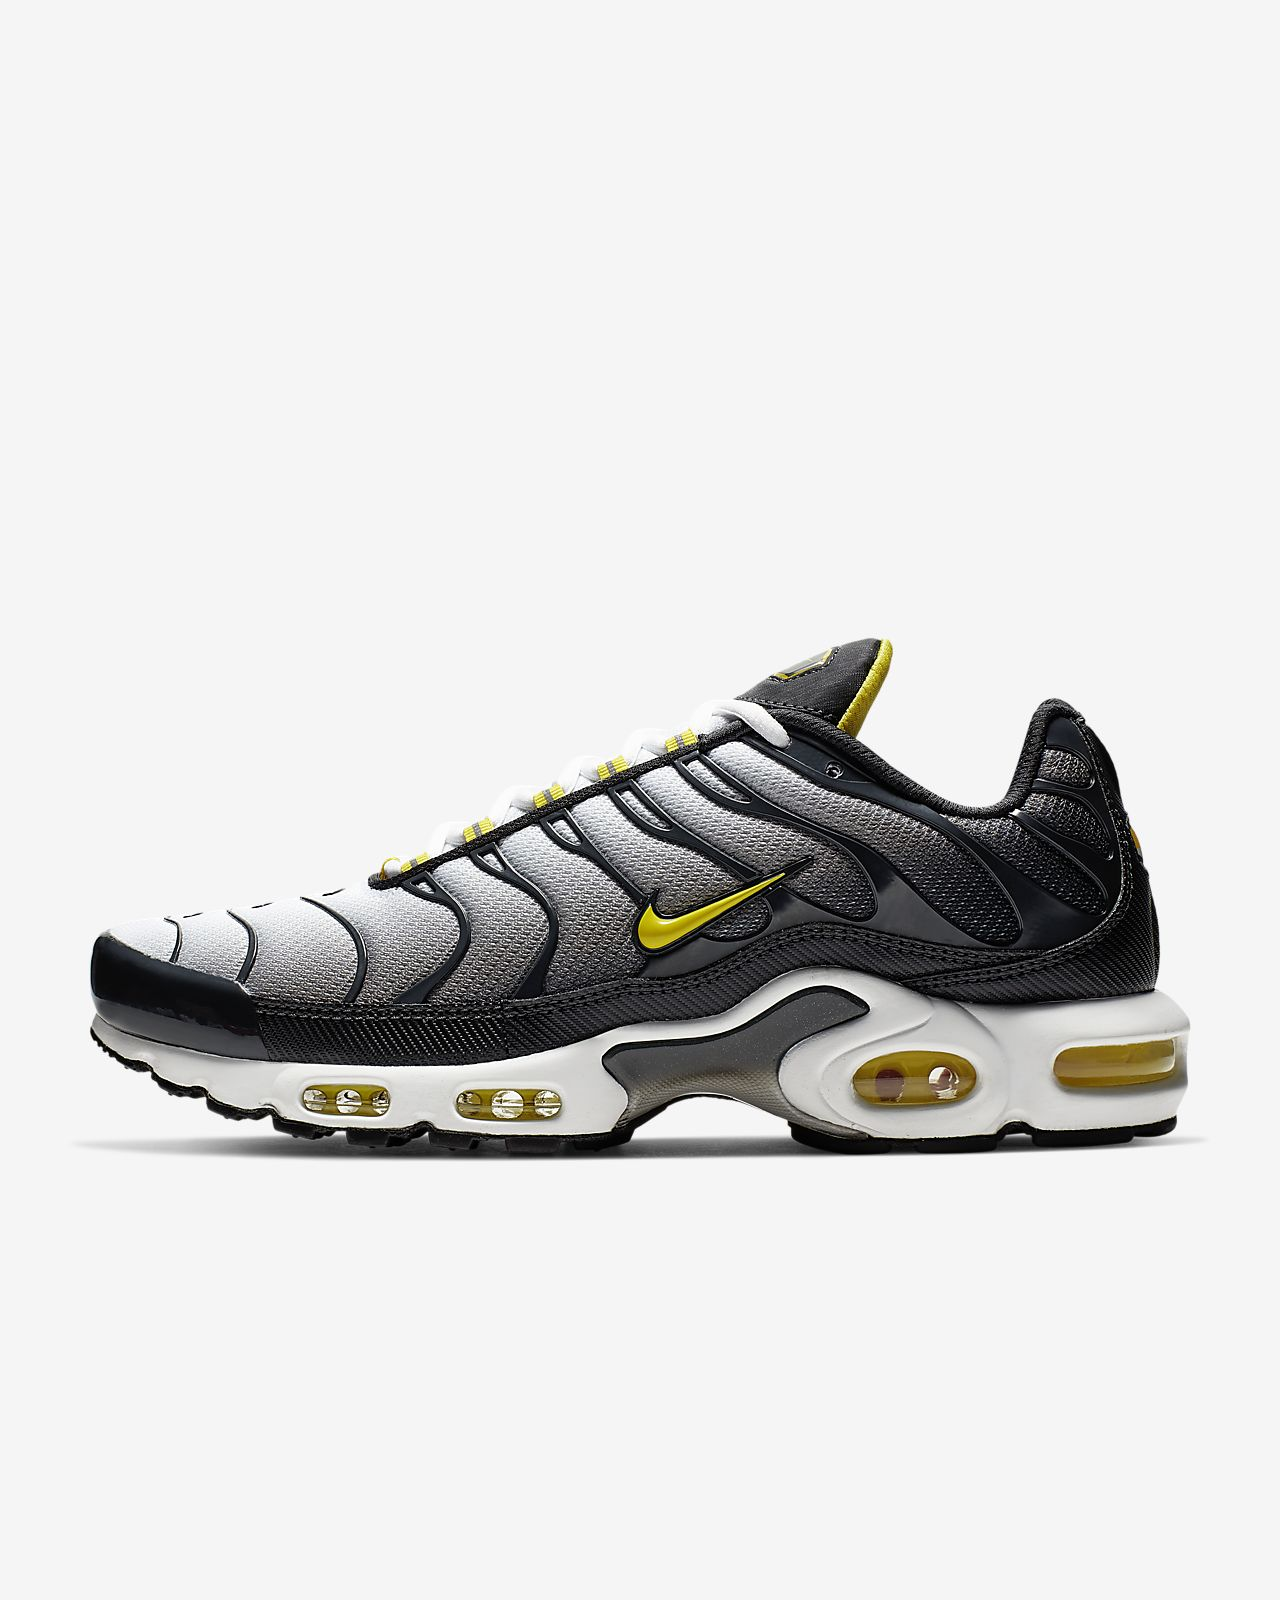 Chaussure Nike Air Max Plus pour Homme